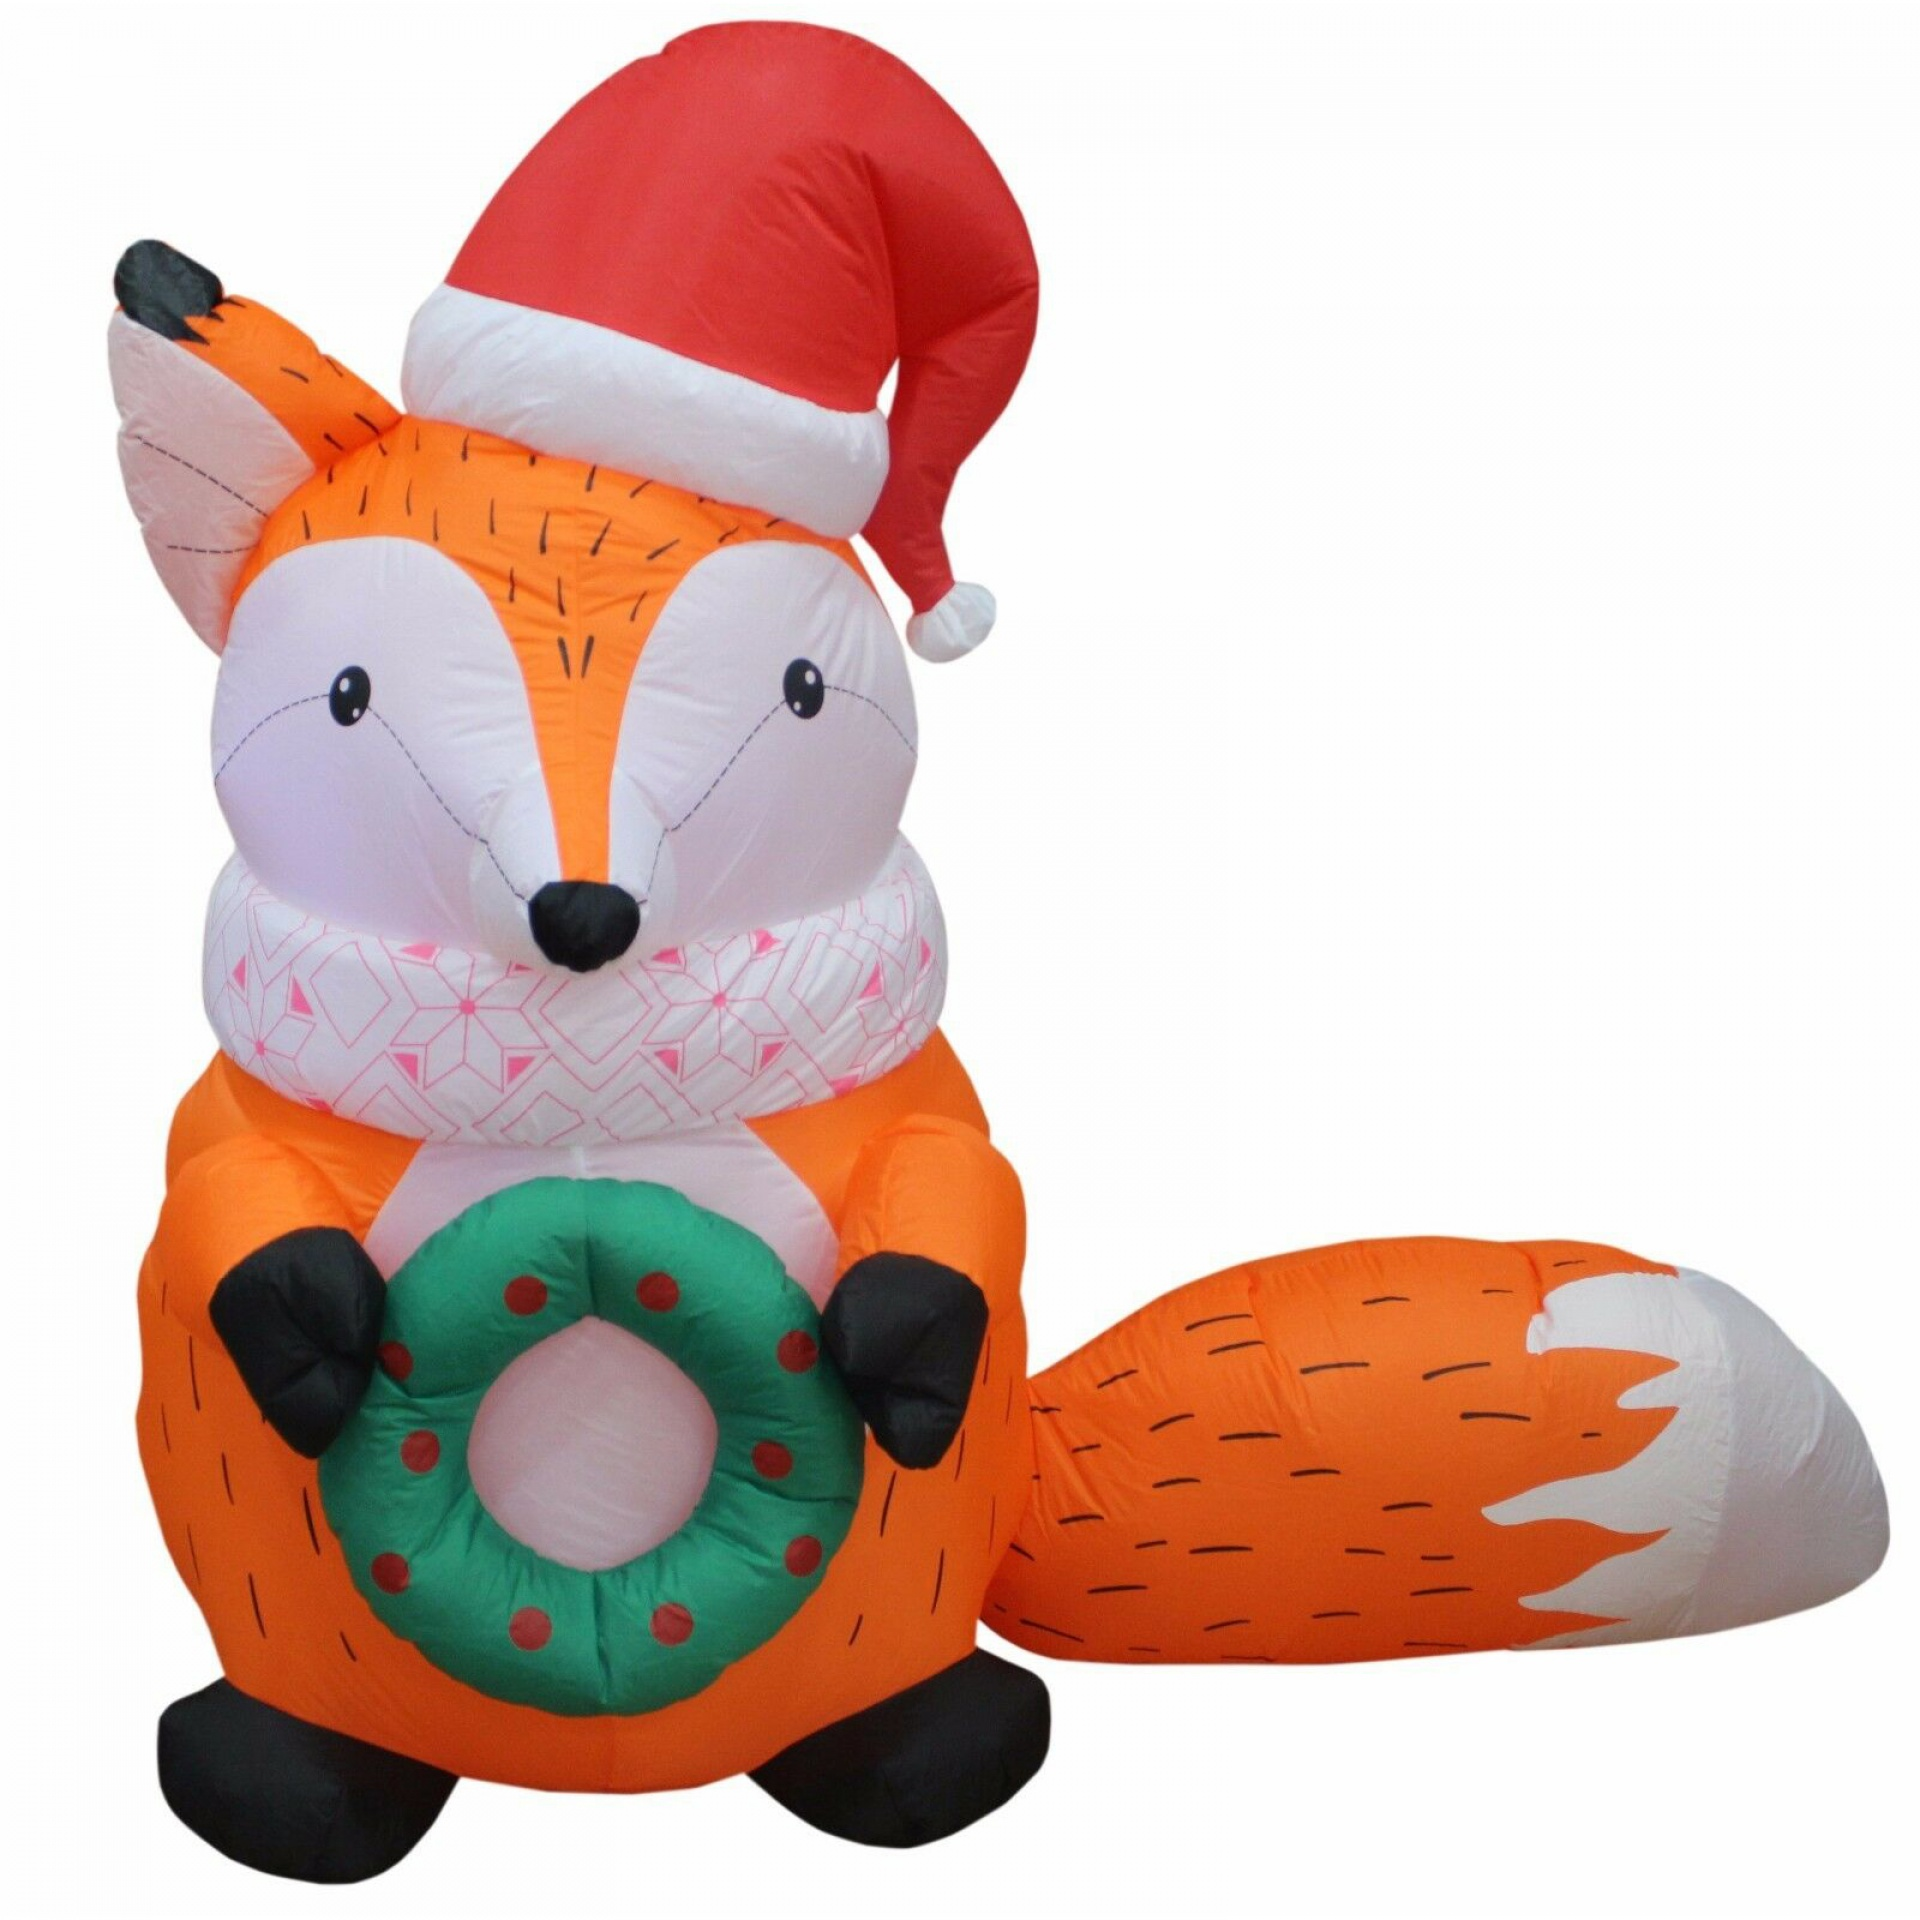 Christmas air blowing LED inflatable courtyard garden decorated with fox Christmas gift hats and wre